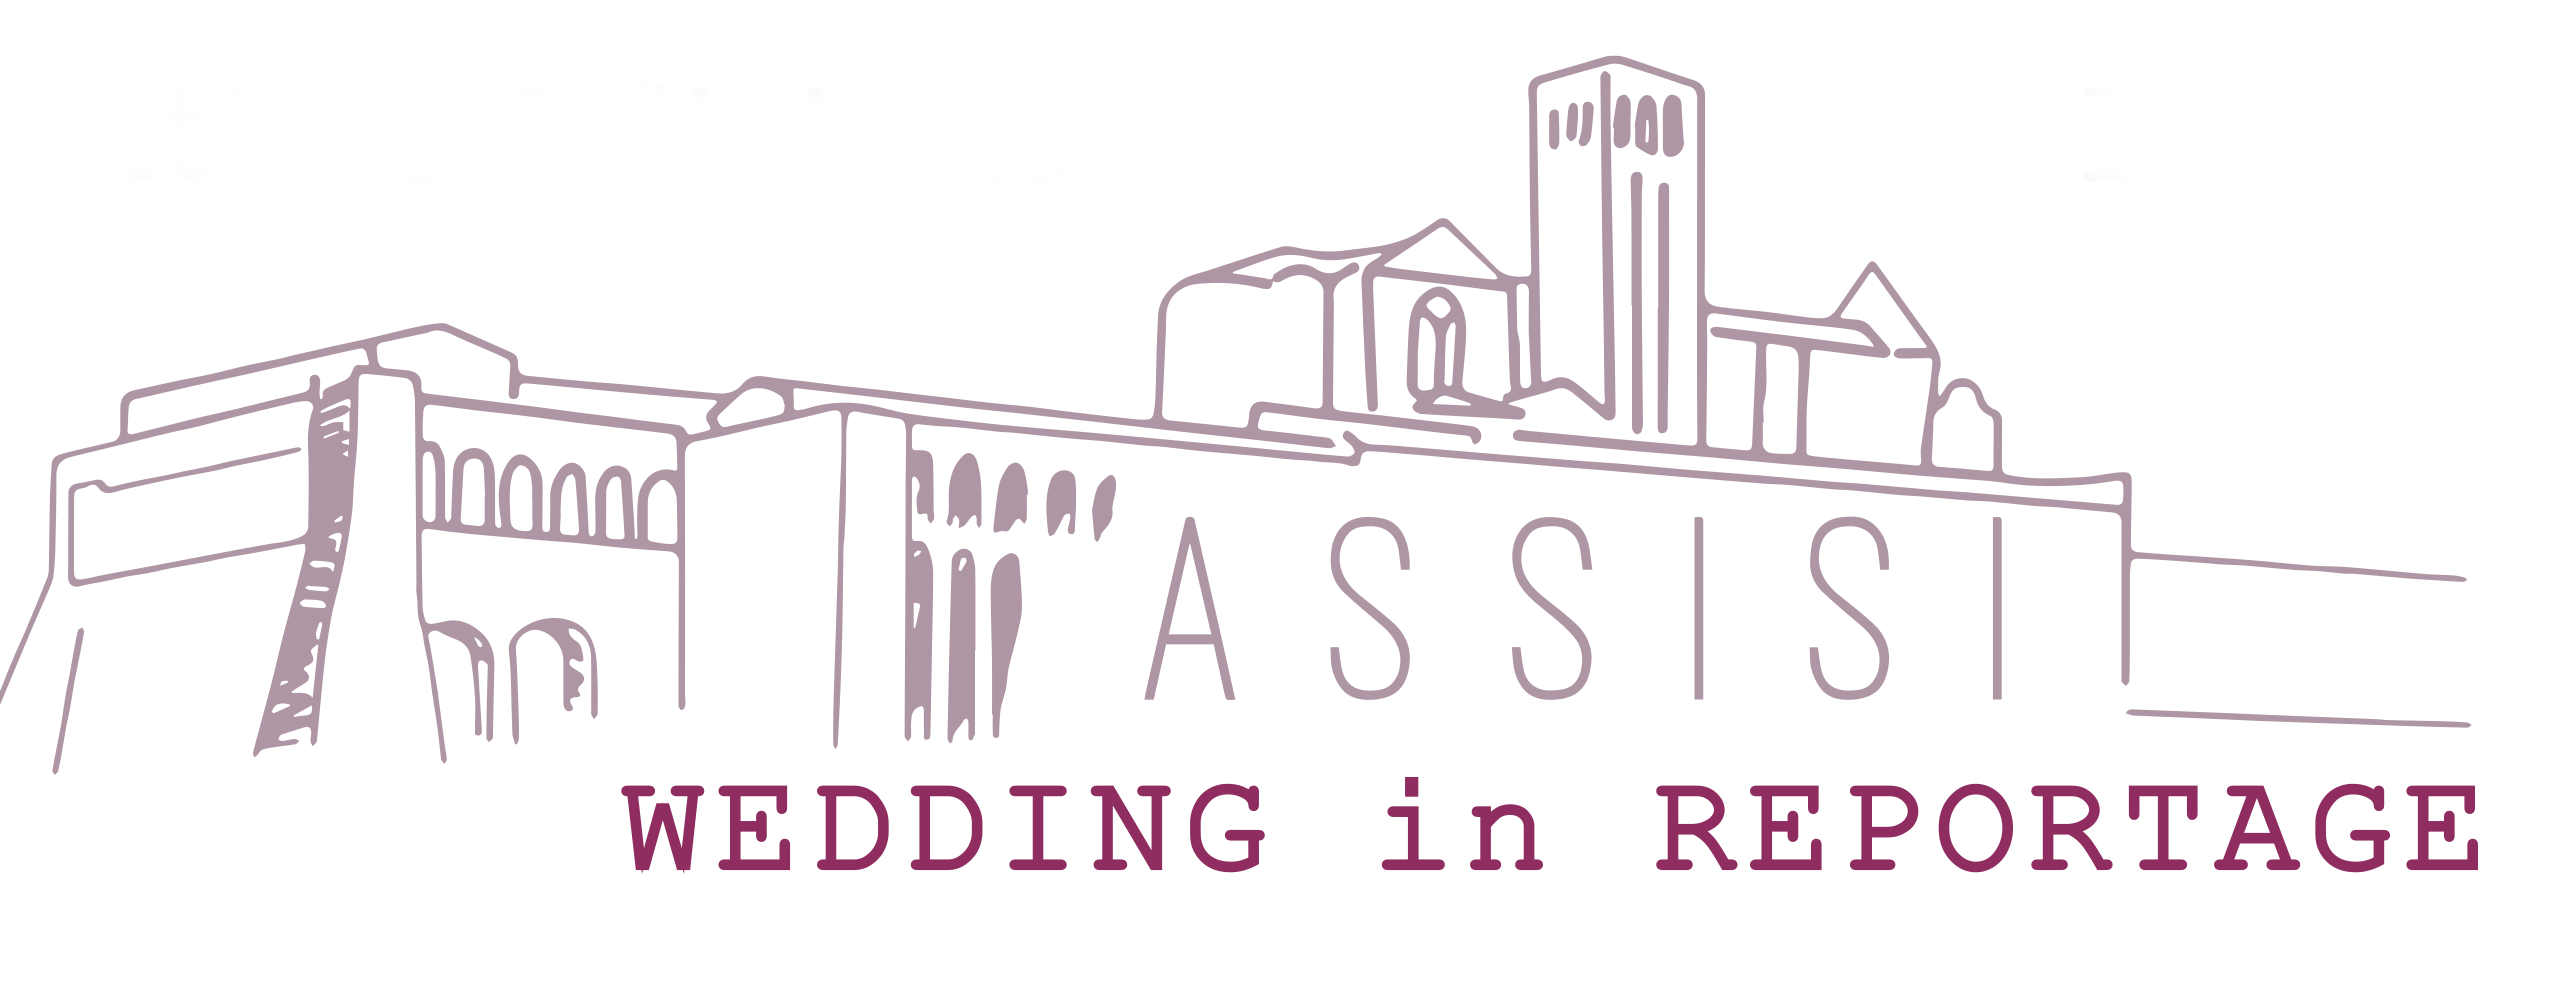 Assisi Wedding in Reportage